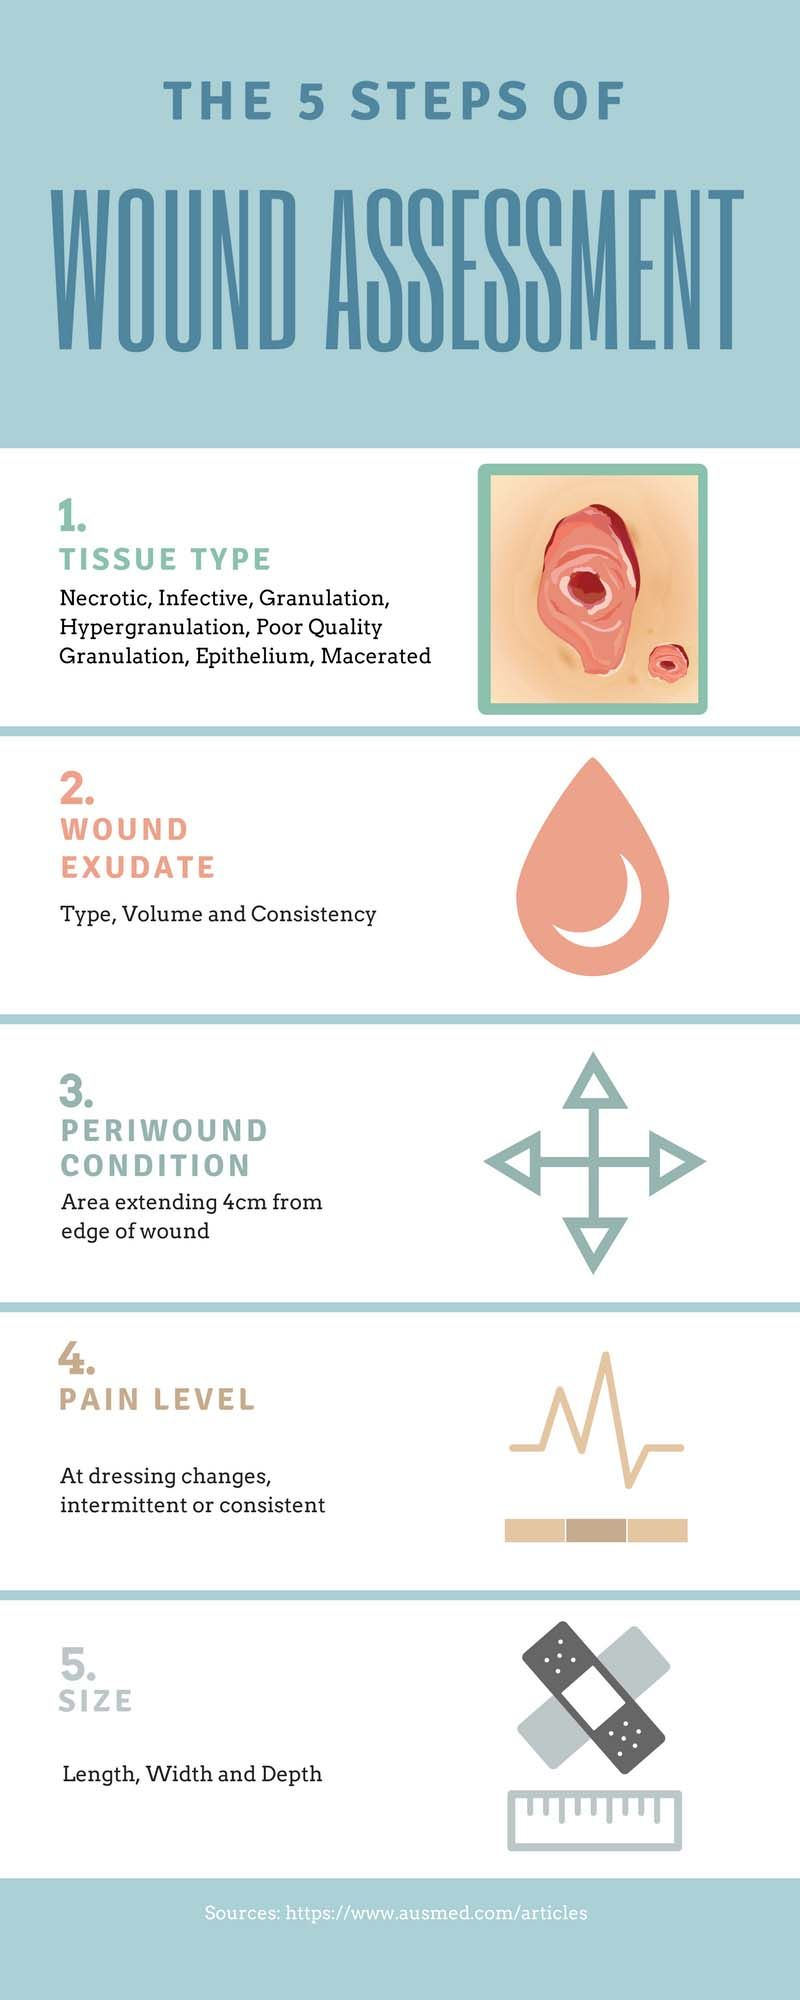 Ausmed's Wound Care and Wound Healing Guide for Nurses Infographic Wound  Assessment